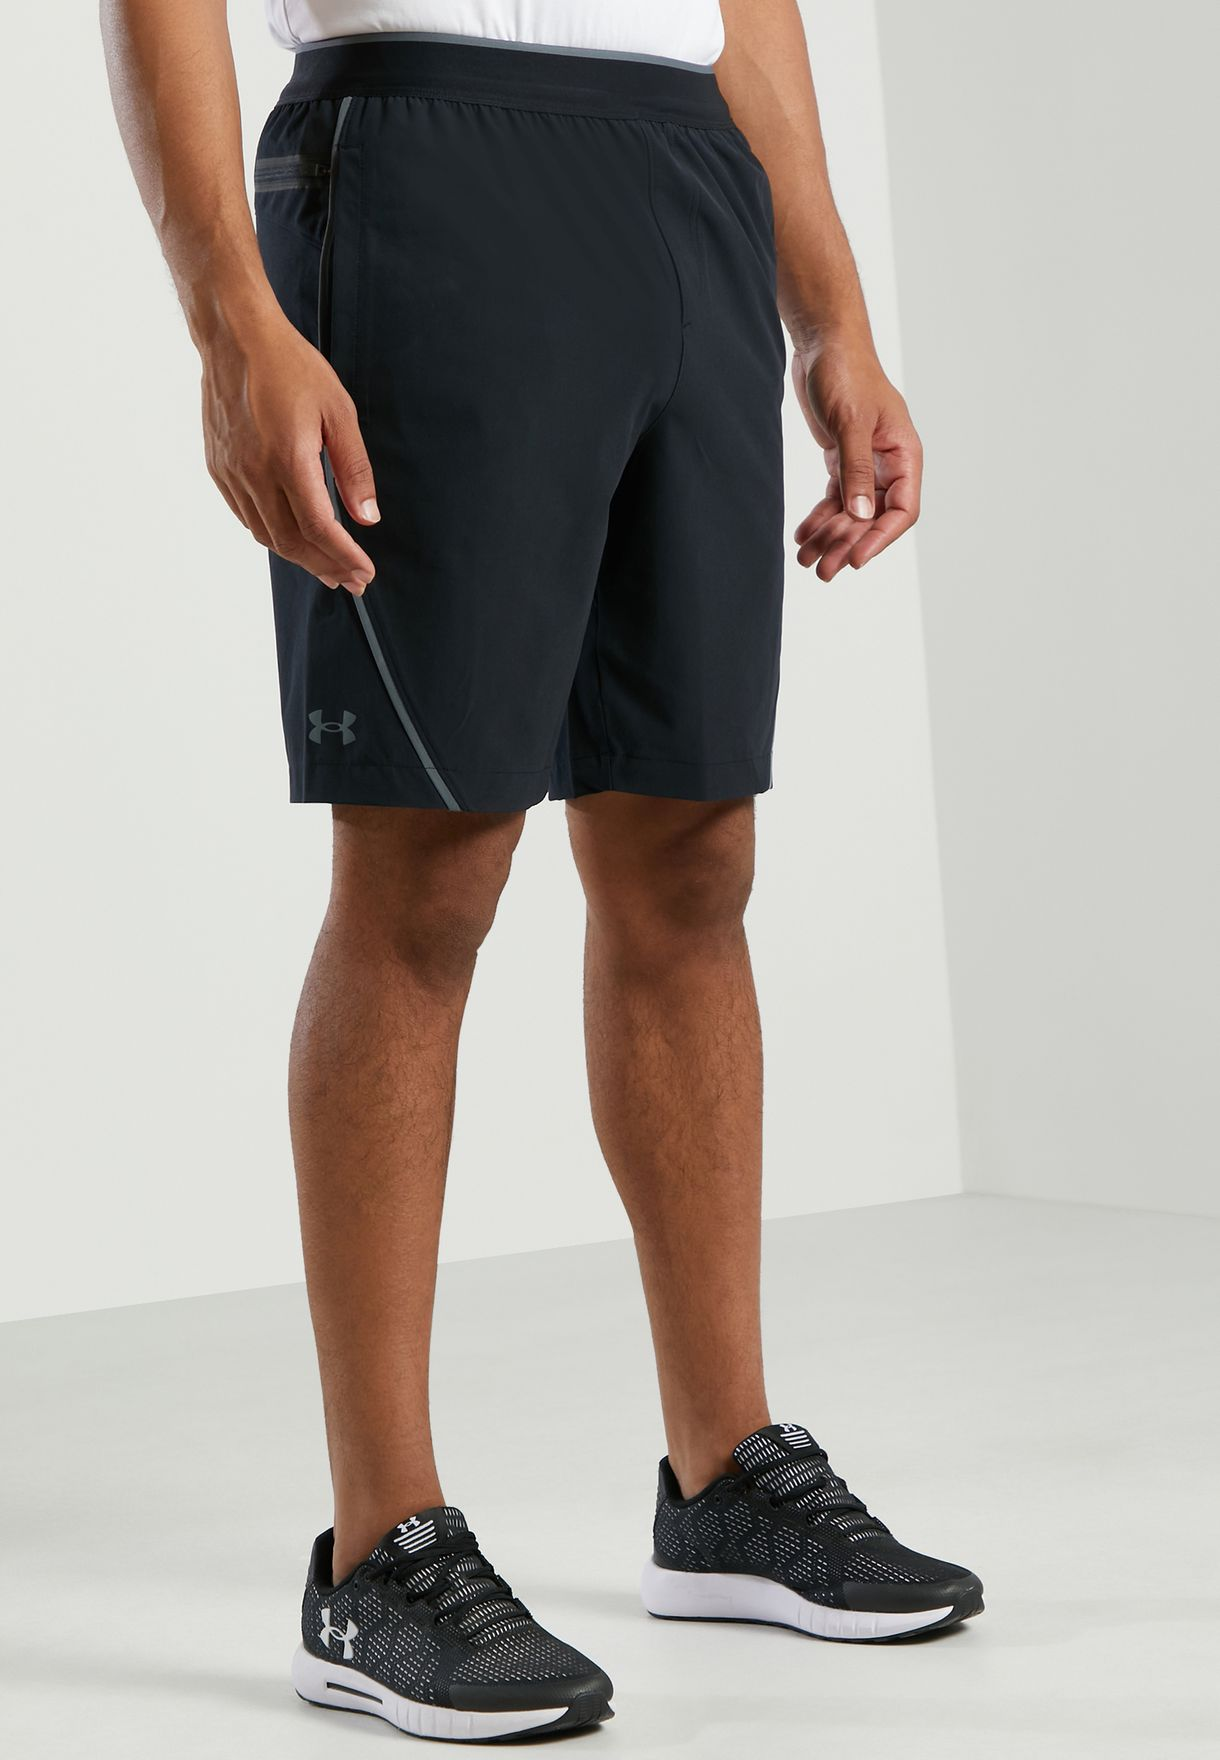 Unstoppable Shorts